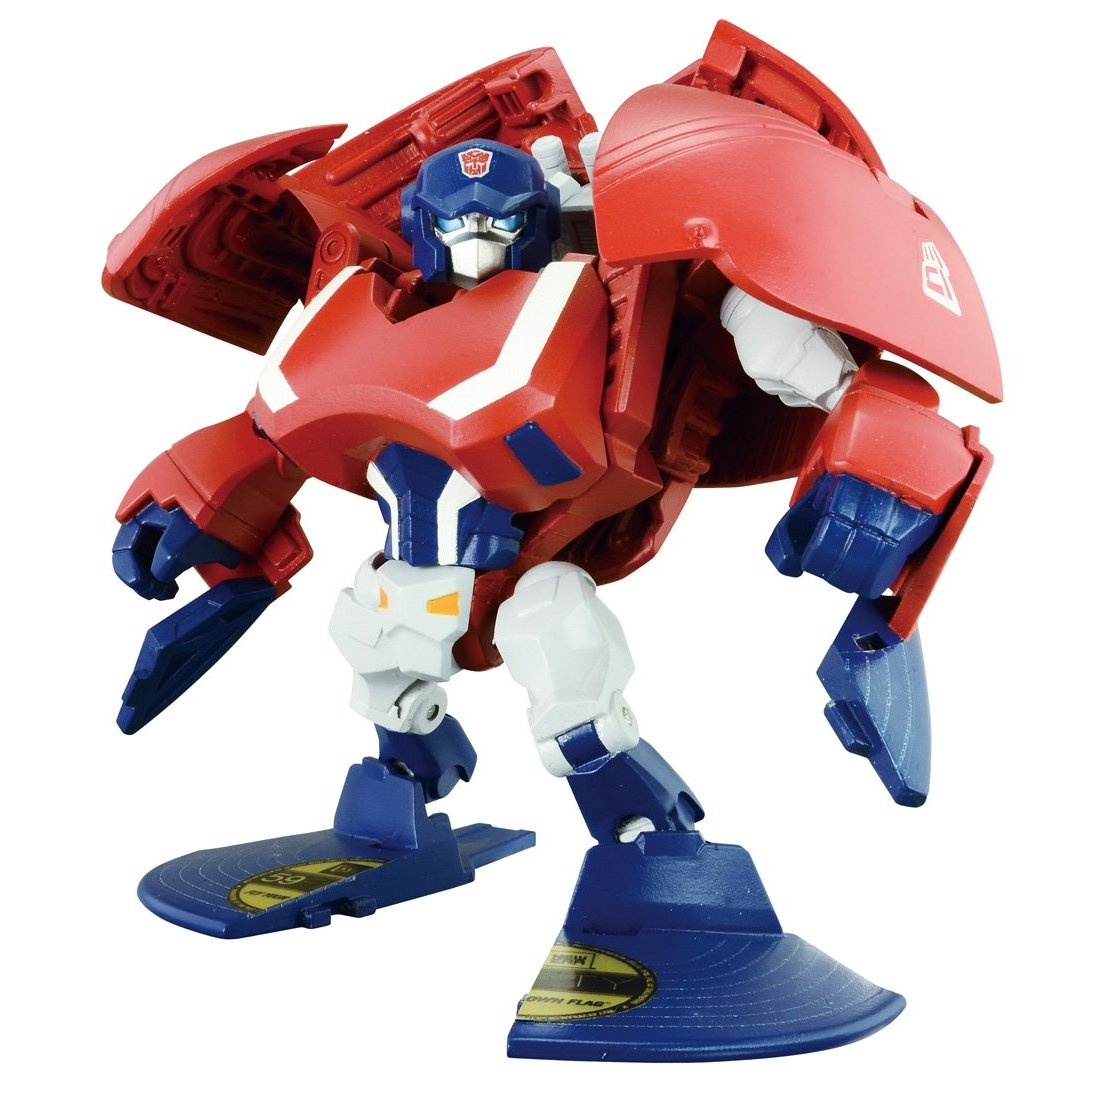 Japanese Transformers Toys 46